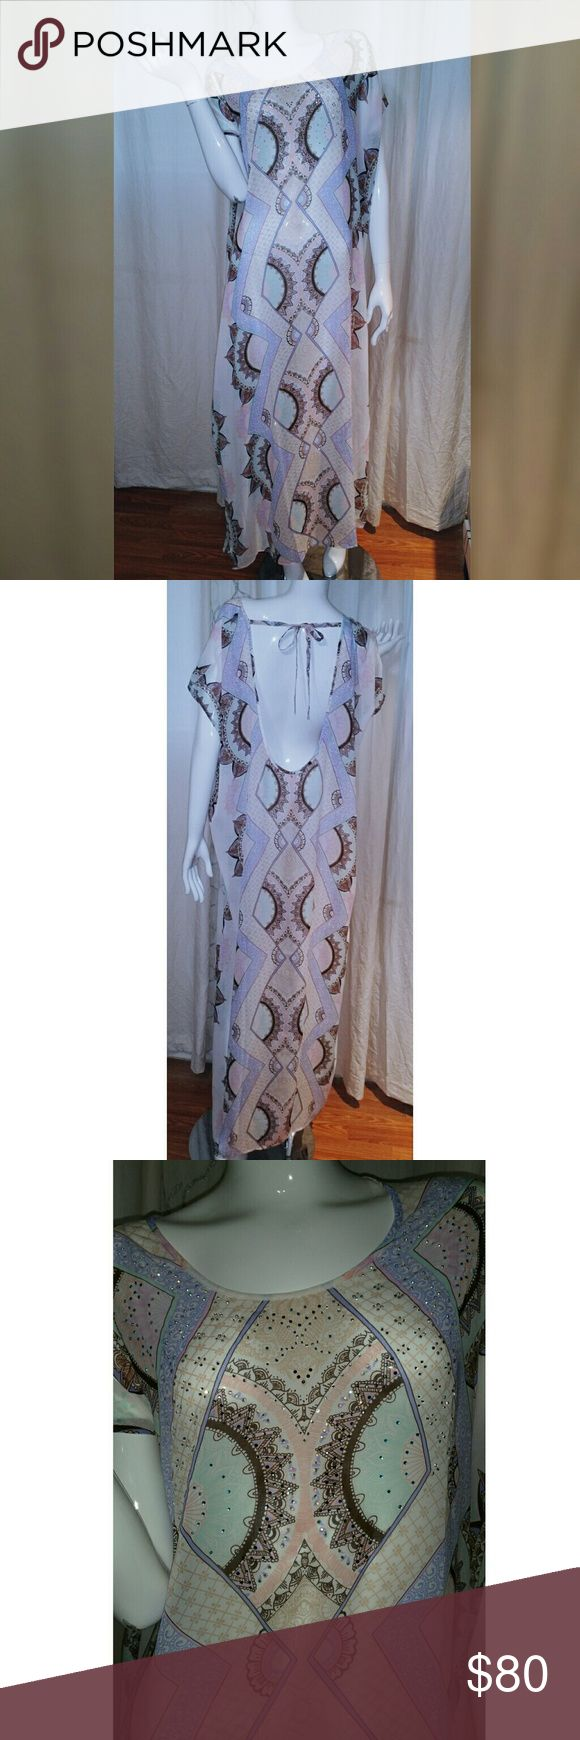 VS Beach Kaftan Coverup Light flowy kaftan coverup in a beautiful pastel print with scattered crystals neckline. It is a Small but anyone up to a size 8/10 can wear it comfortably. Victoria's Secret Swim